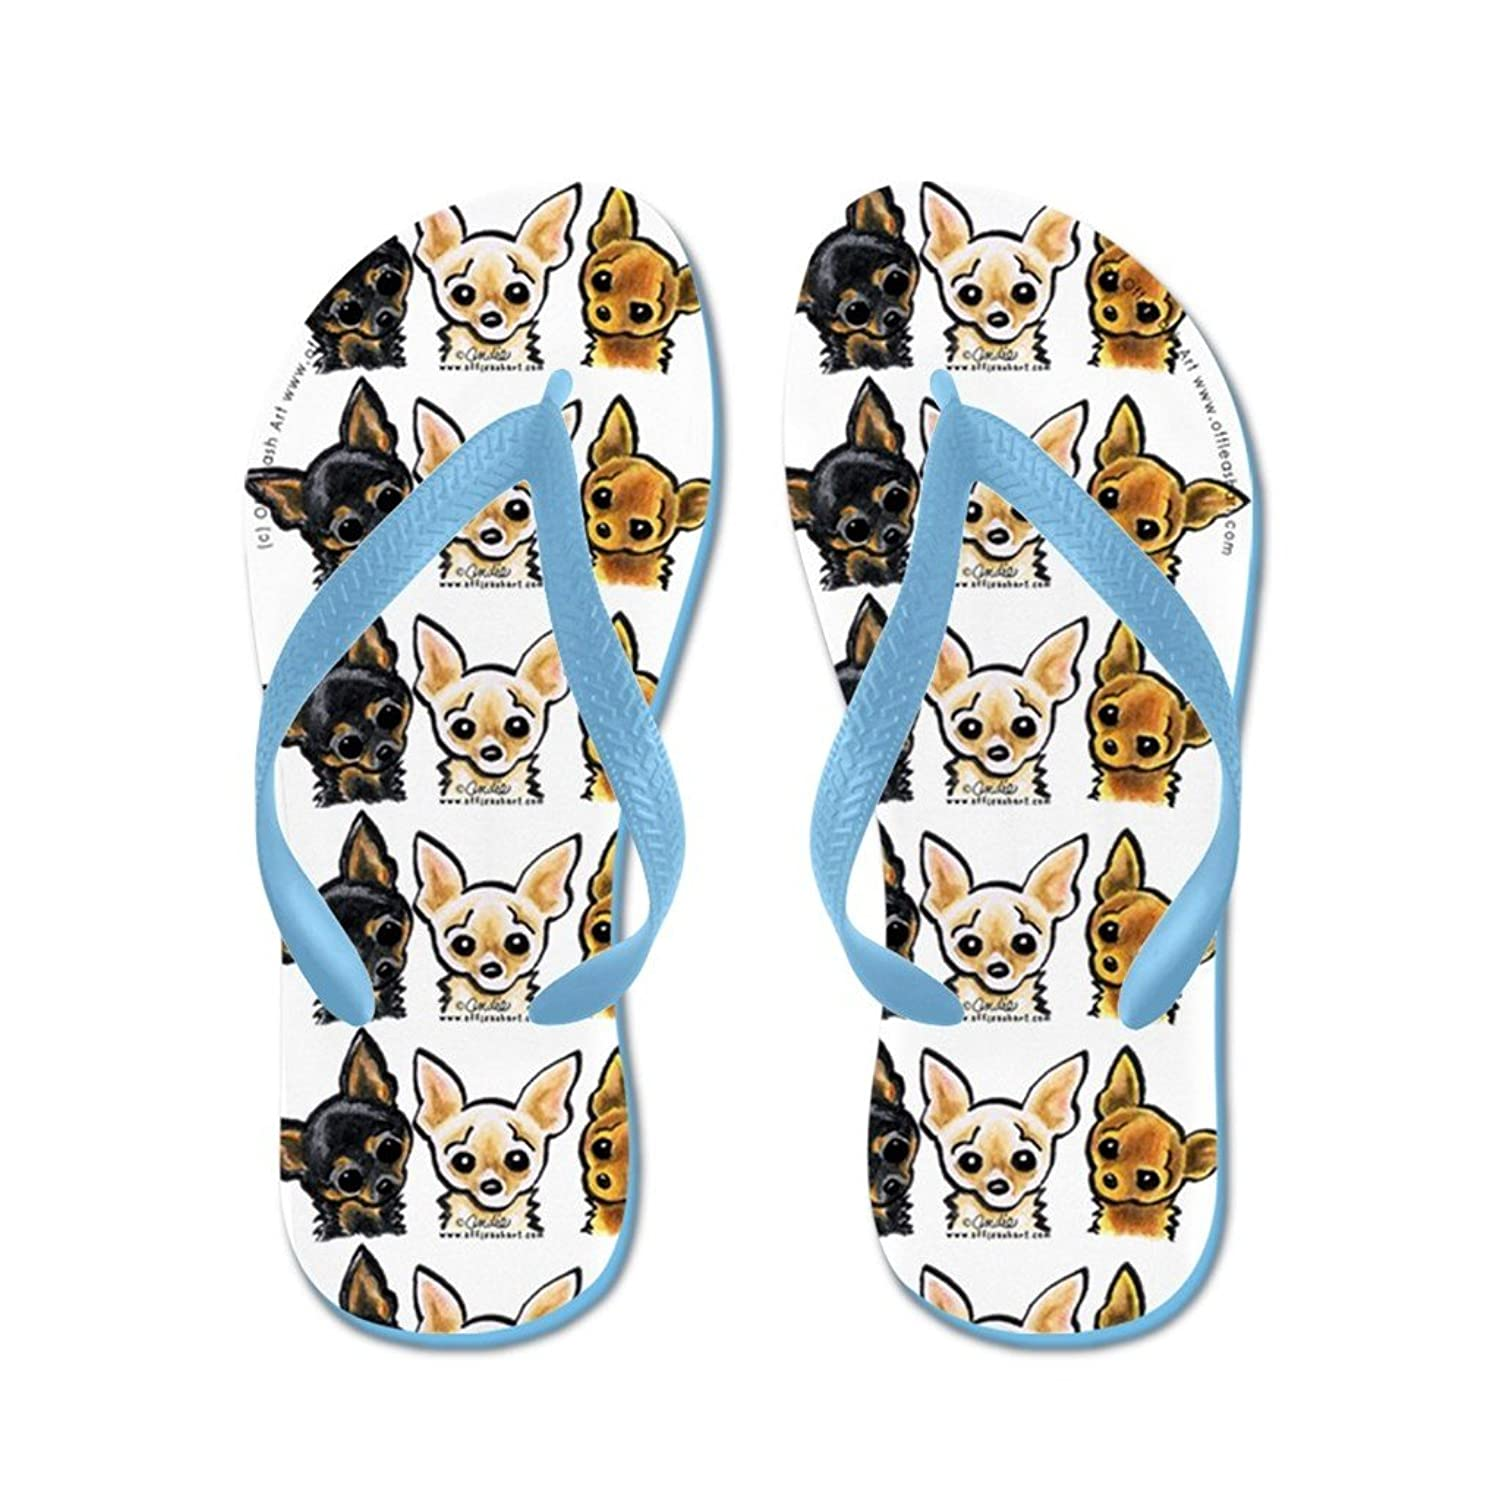 9f940a49a009 Lplpol 3 Smooth Chihuaha Flip Flops for Kids Adult Unisex Beach Sandals  Pool Shoes Party Slippers